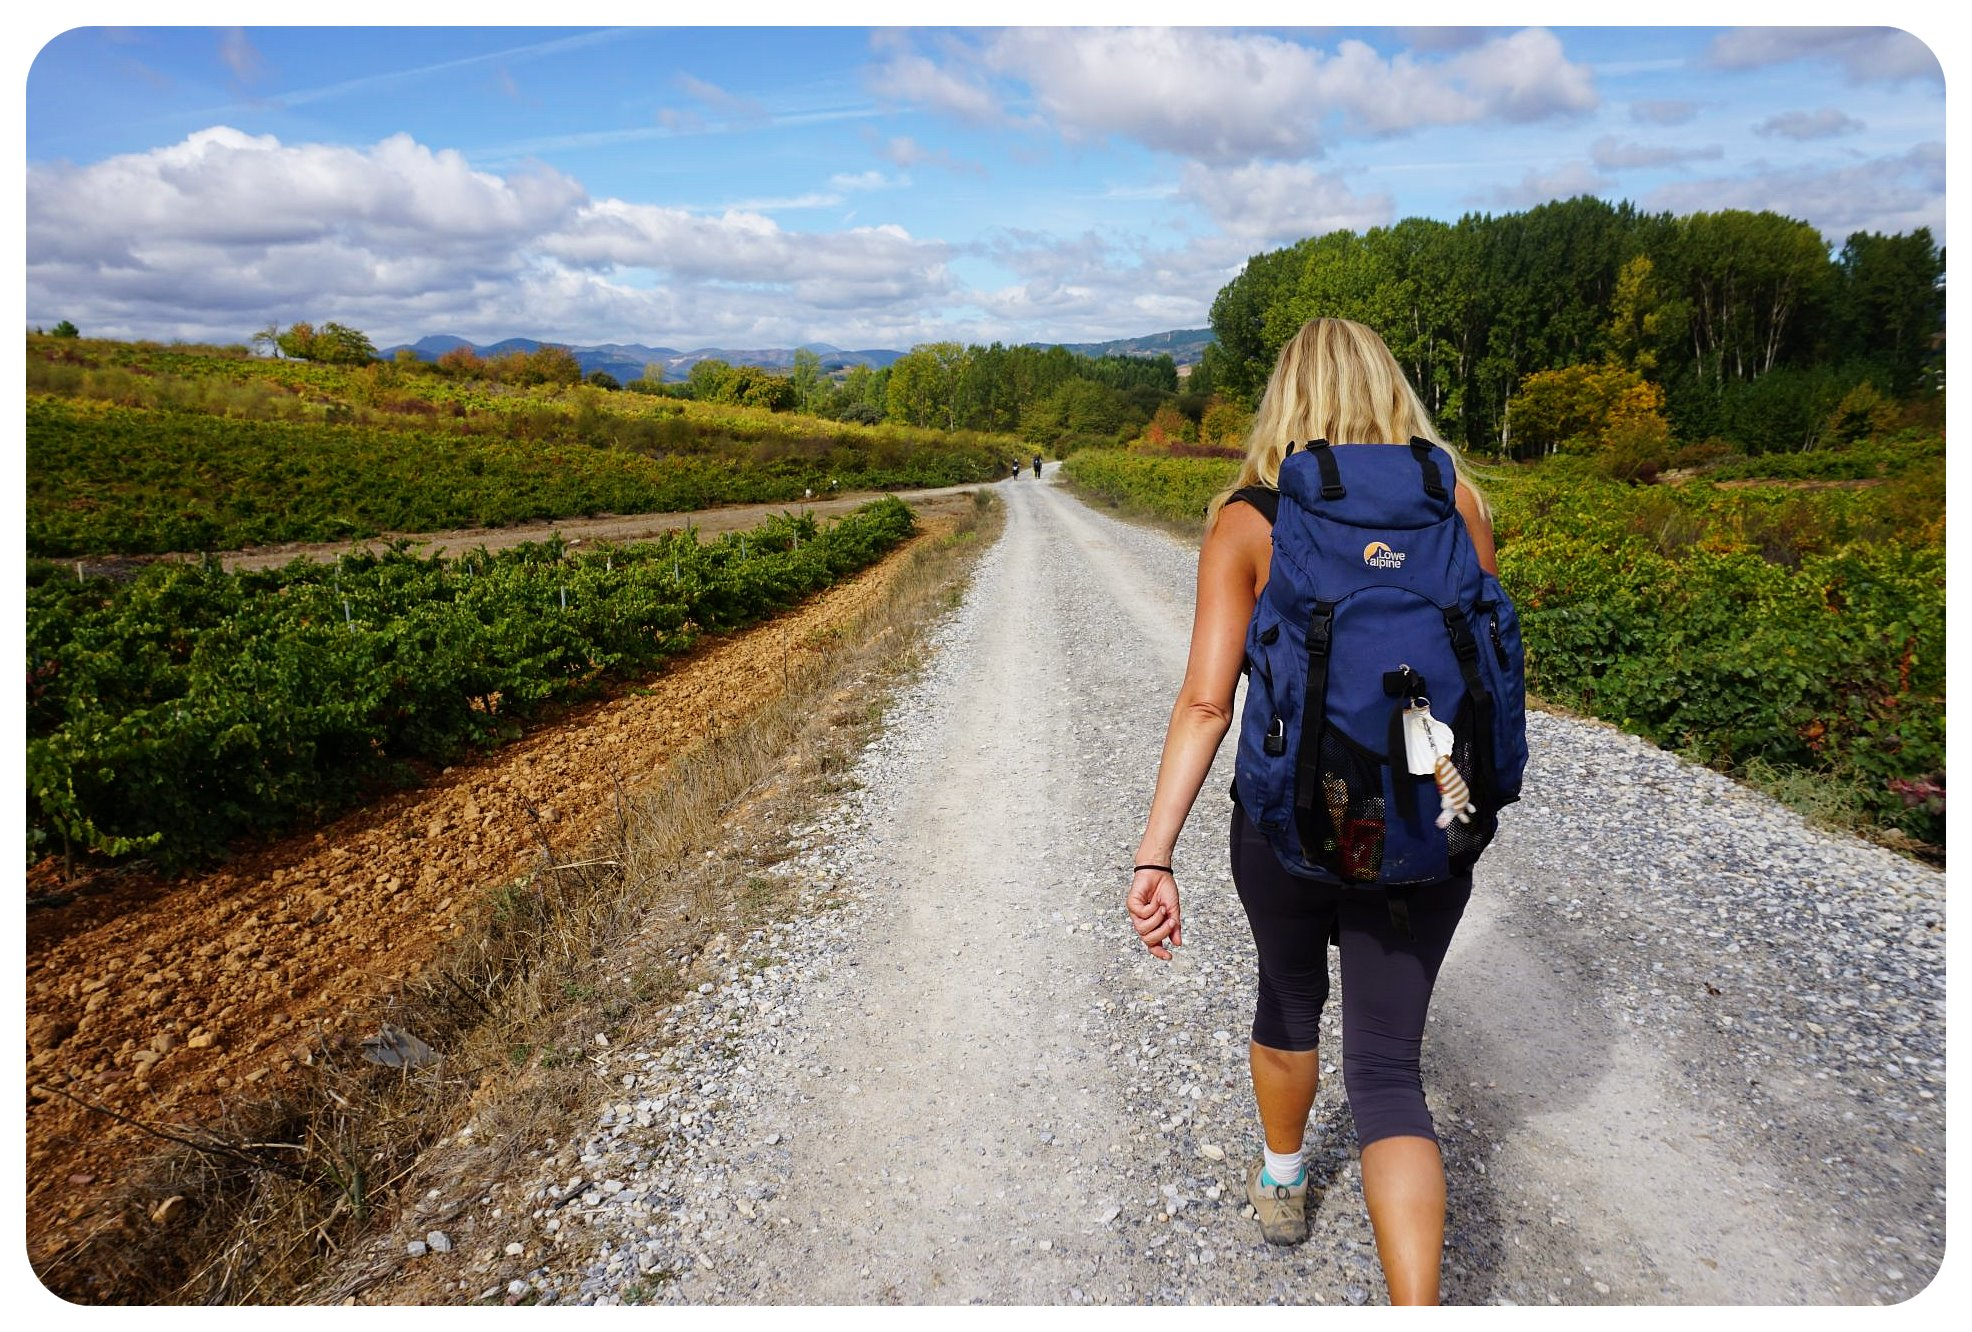 Camino Santiago Packing List Walking The Camino De Santiago A Packing List For A 500 Mile Hike